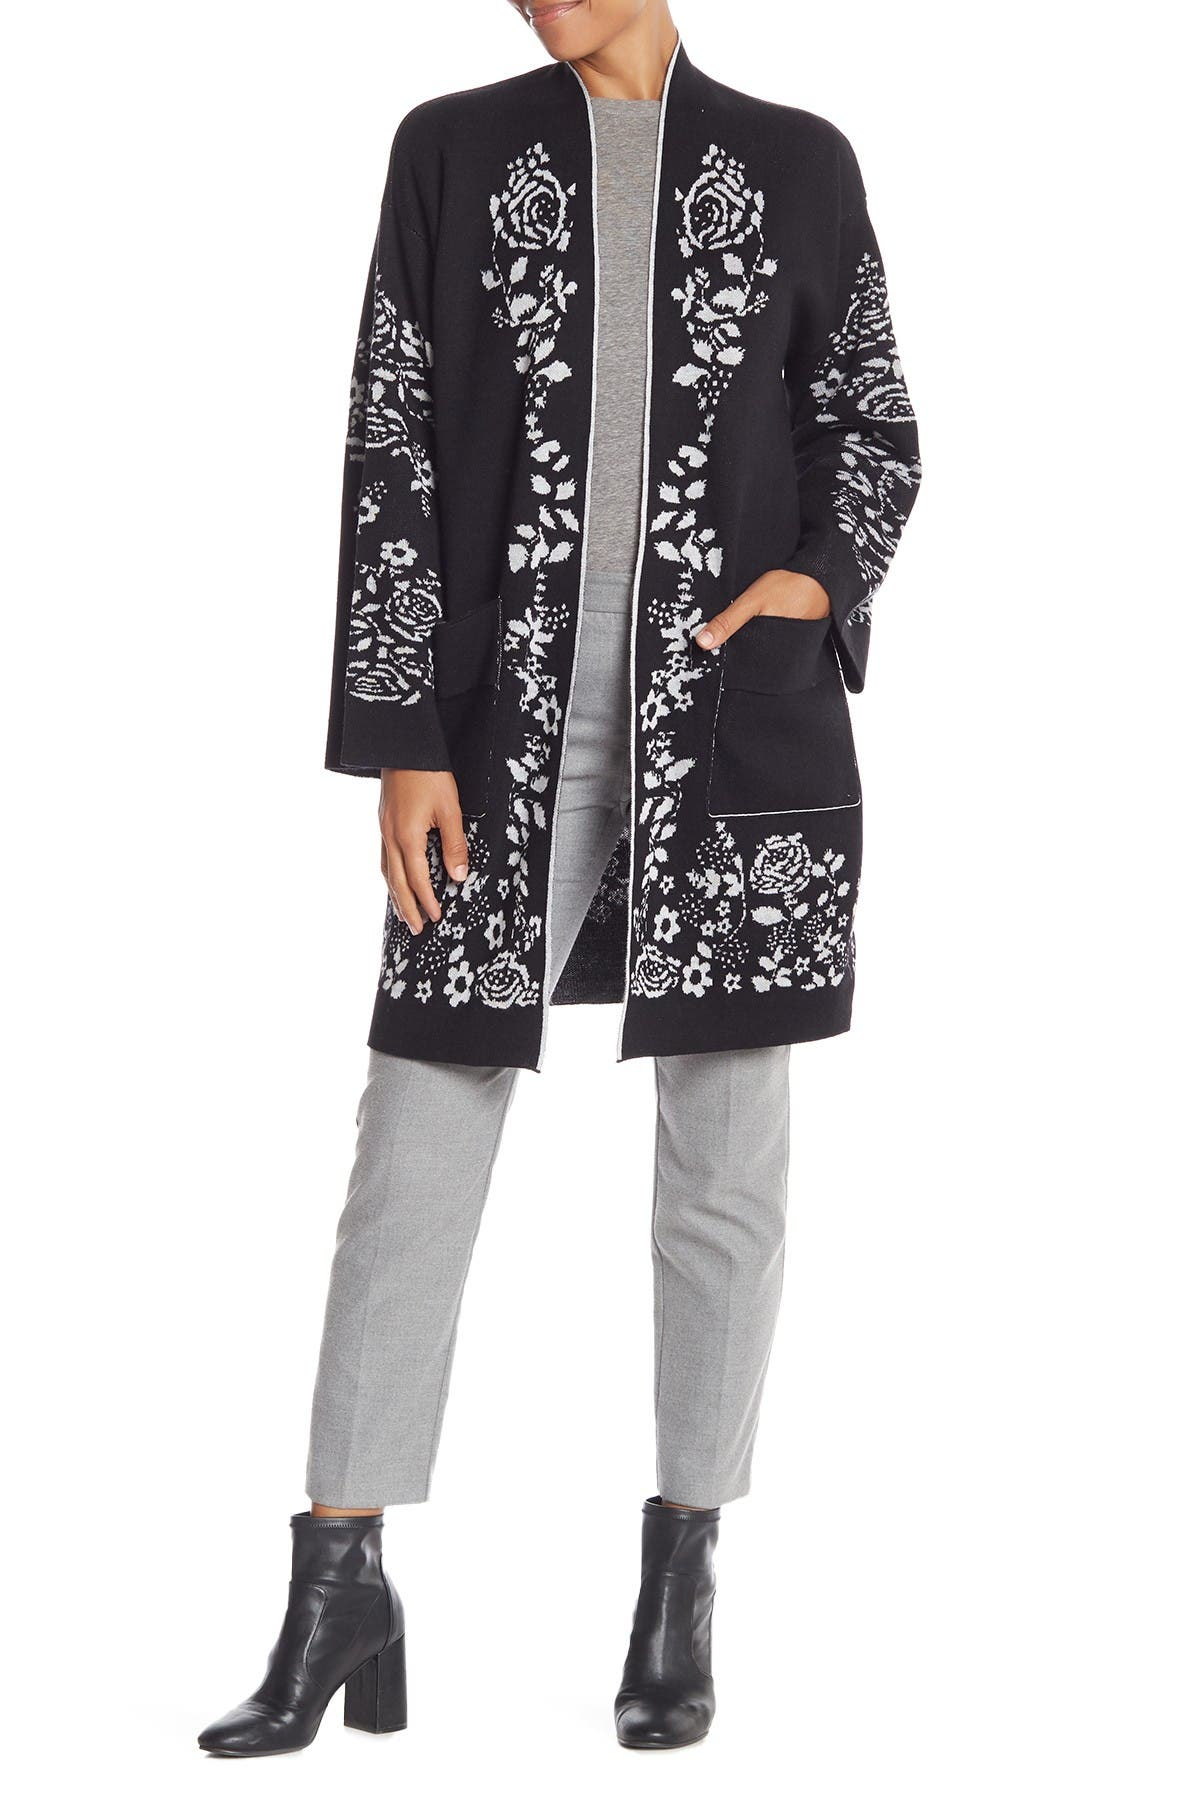 Image of Vertigo Floral Open Front Cardigan Sweater Coat